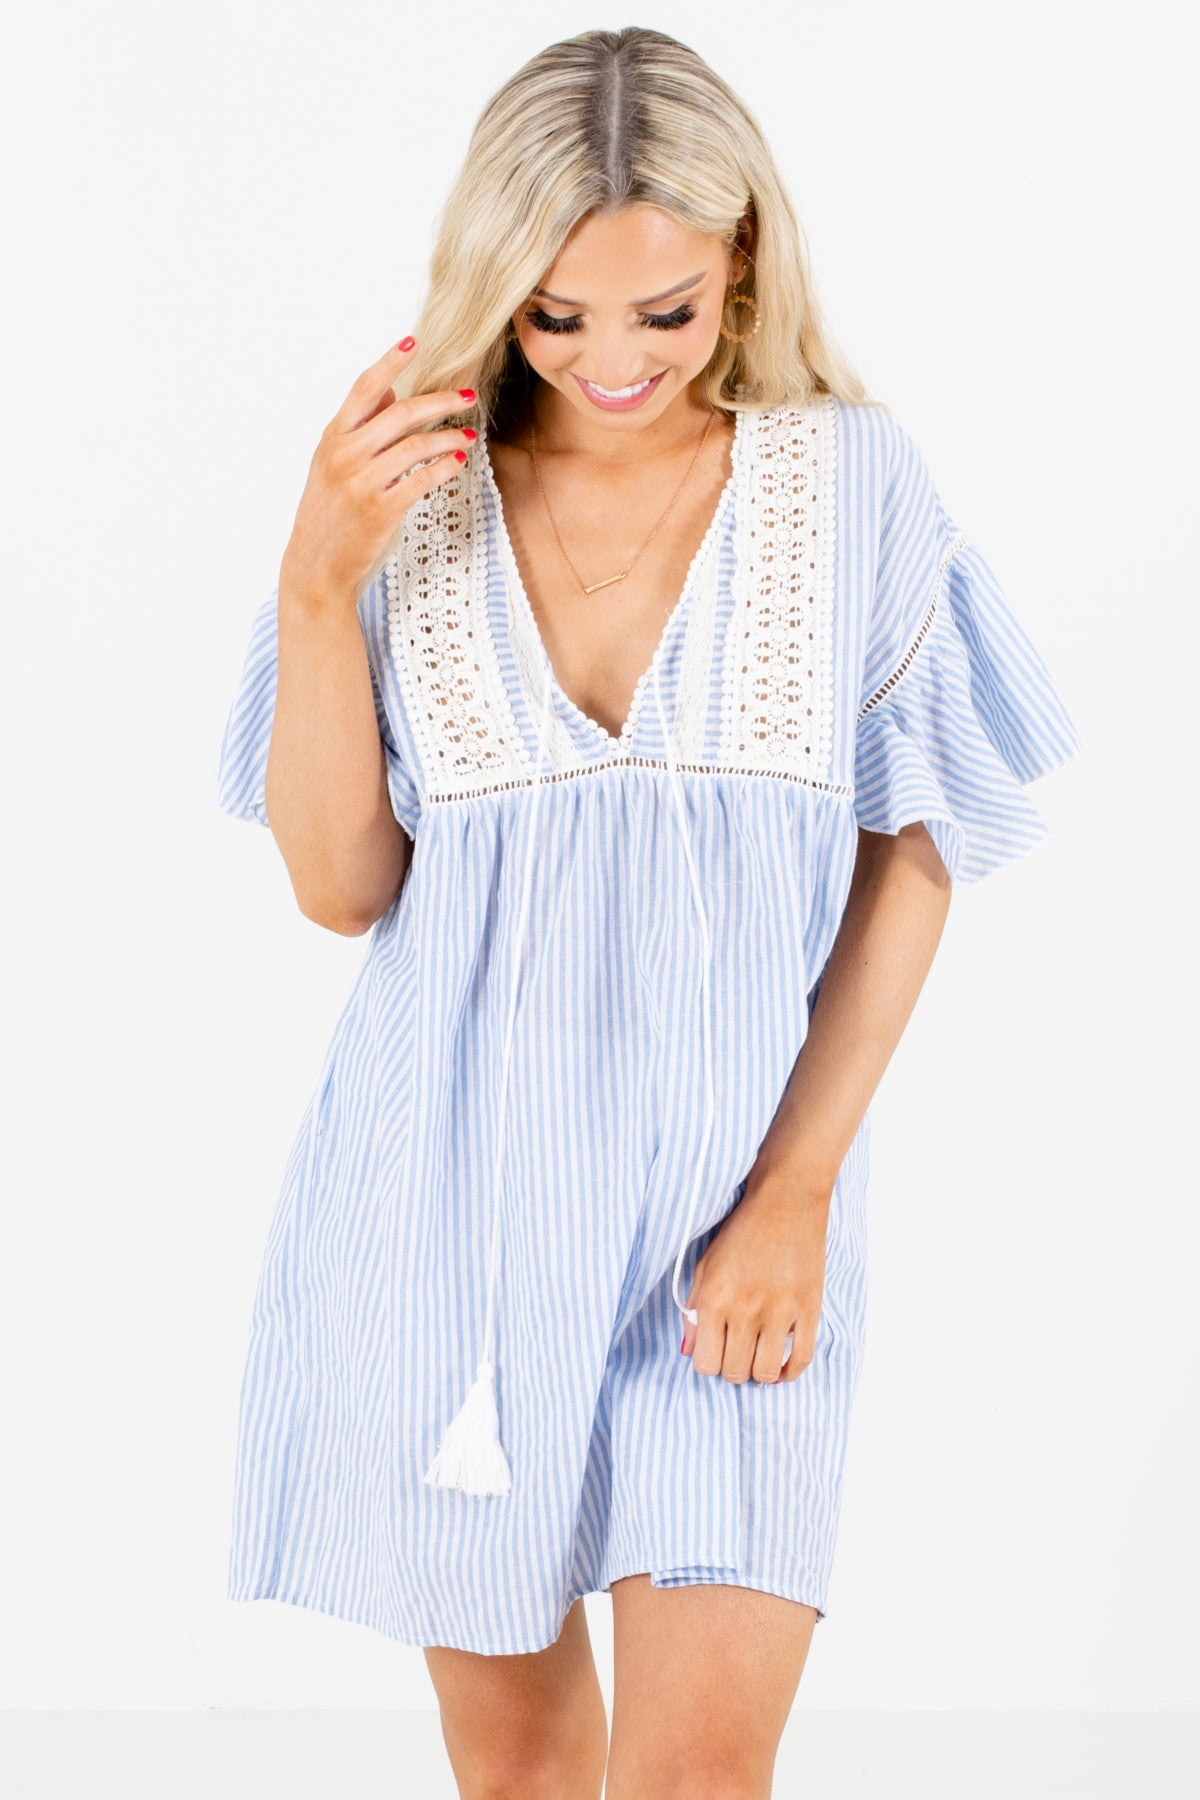 Blue and White Striped Boutique Mini Dresses for Women